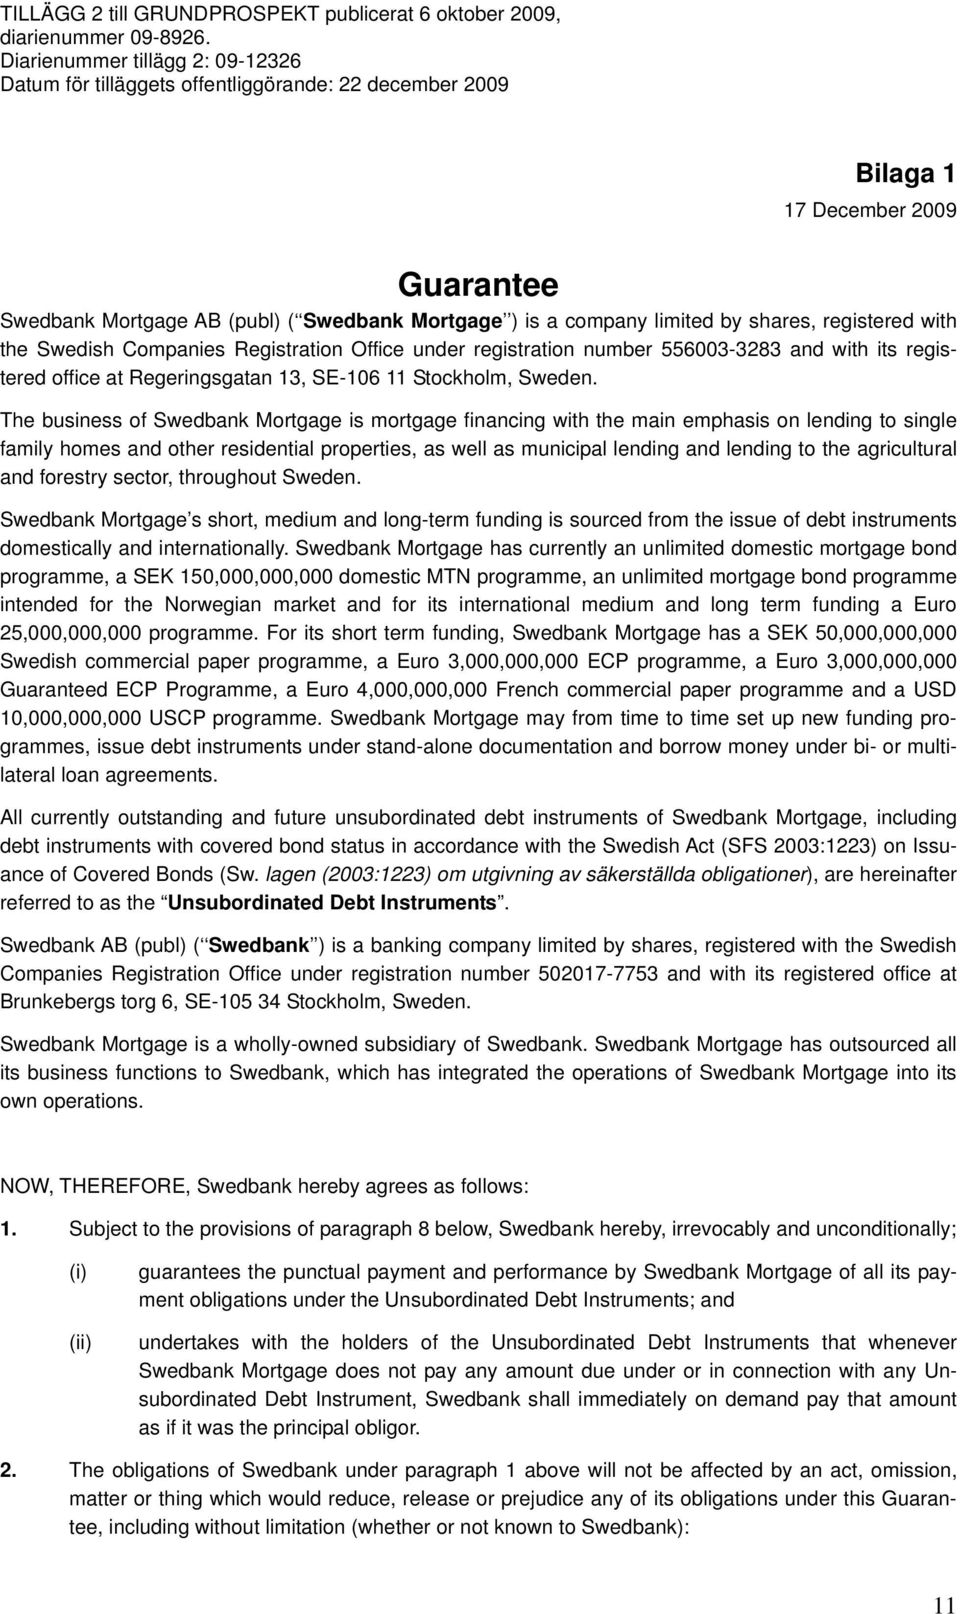 The business of Swedbank Mortgage is mortgage financing with the main emphasis on lending to single family homes and other residential properties, as well as municipal lending and lending to the